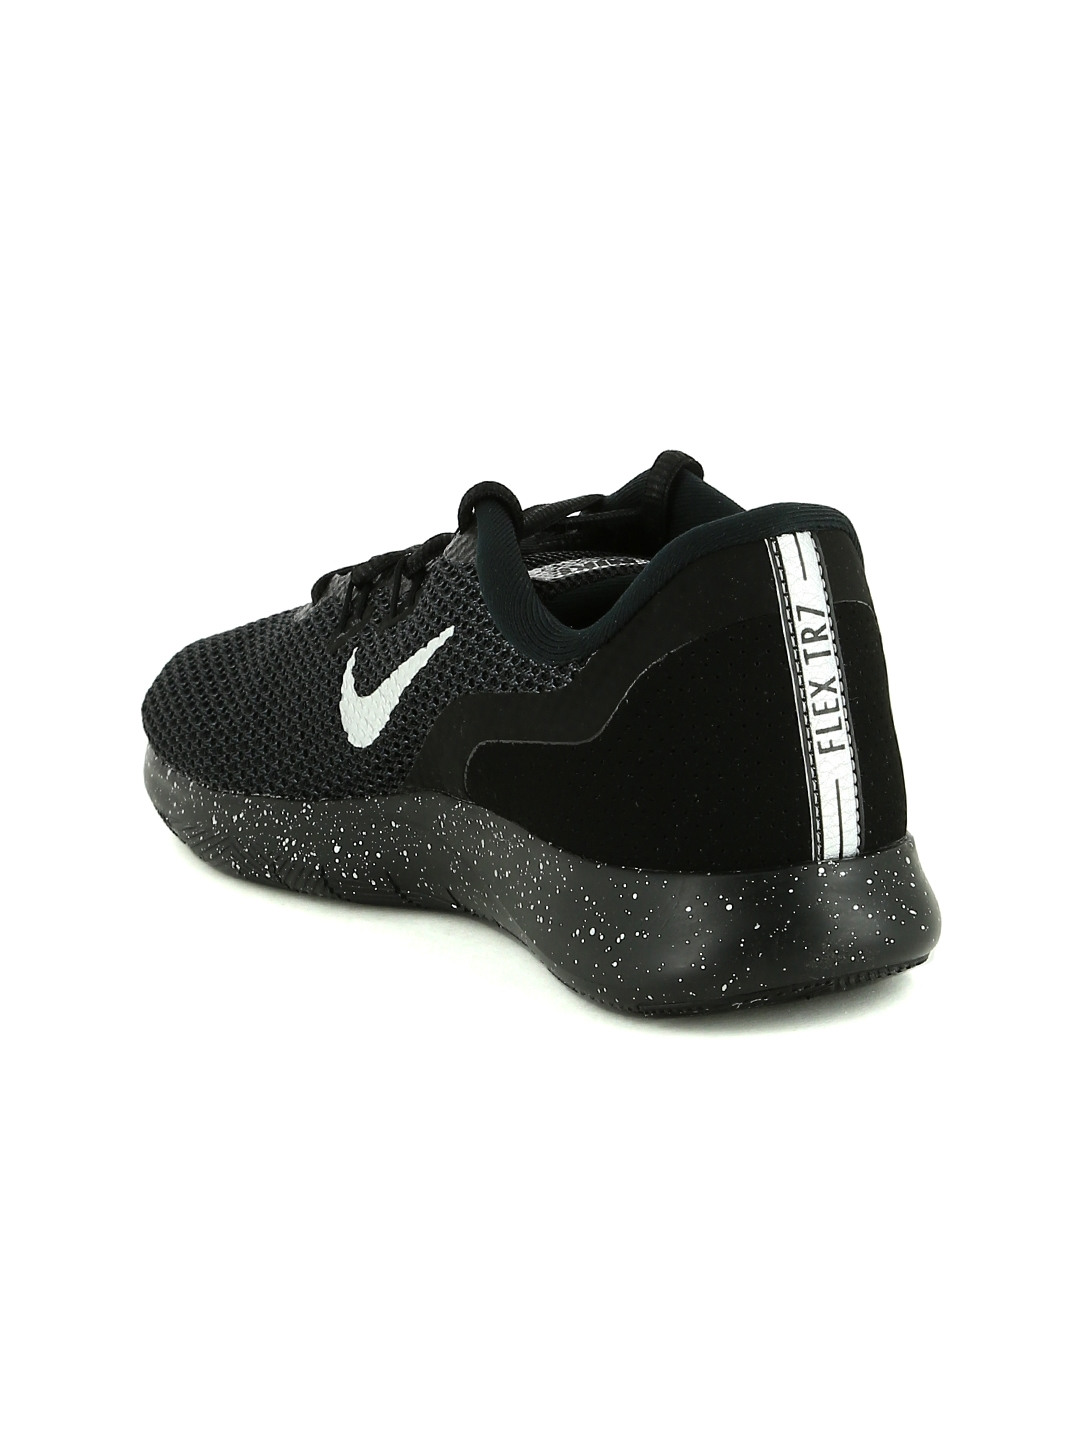 3c995b2673d3 Buy Nike Women Black LEX TRAINER 7 PRM Training Shoes - Sports Shoes ...